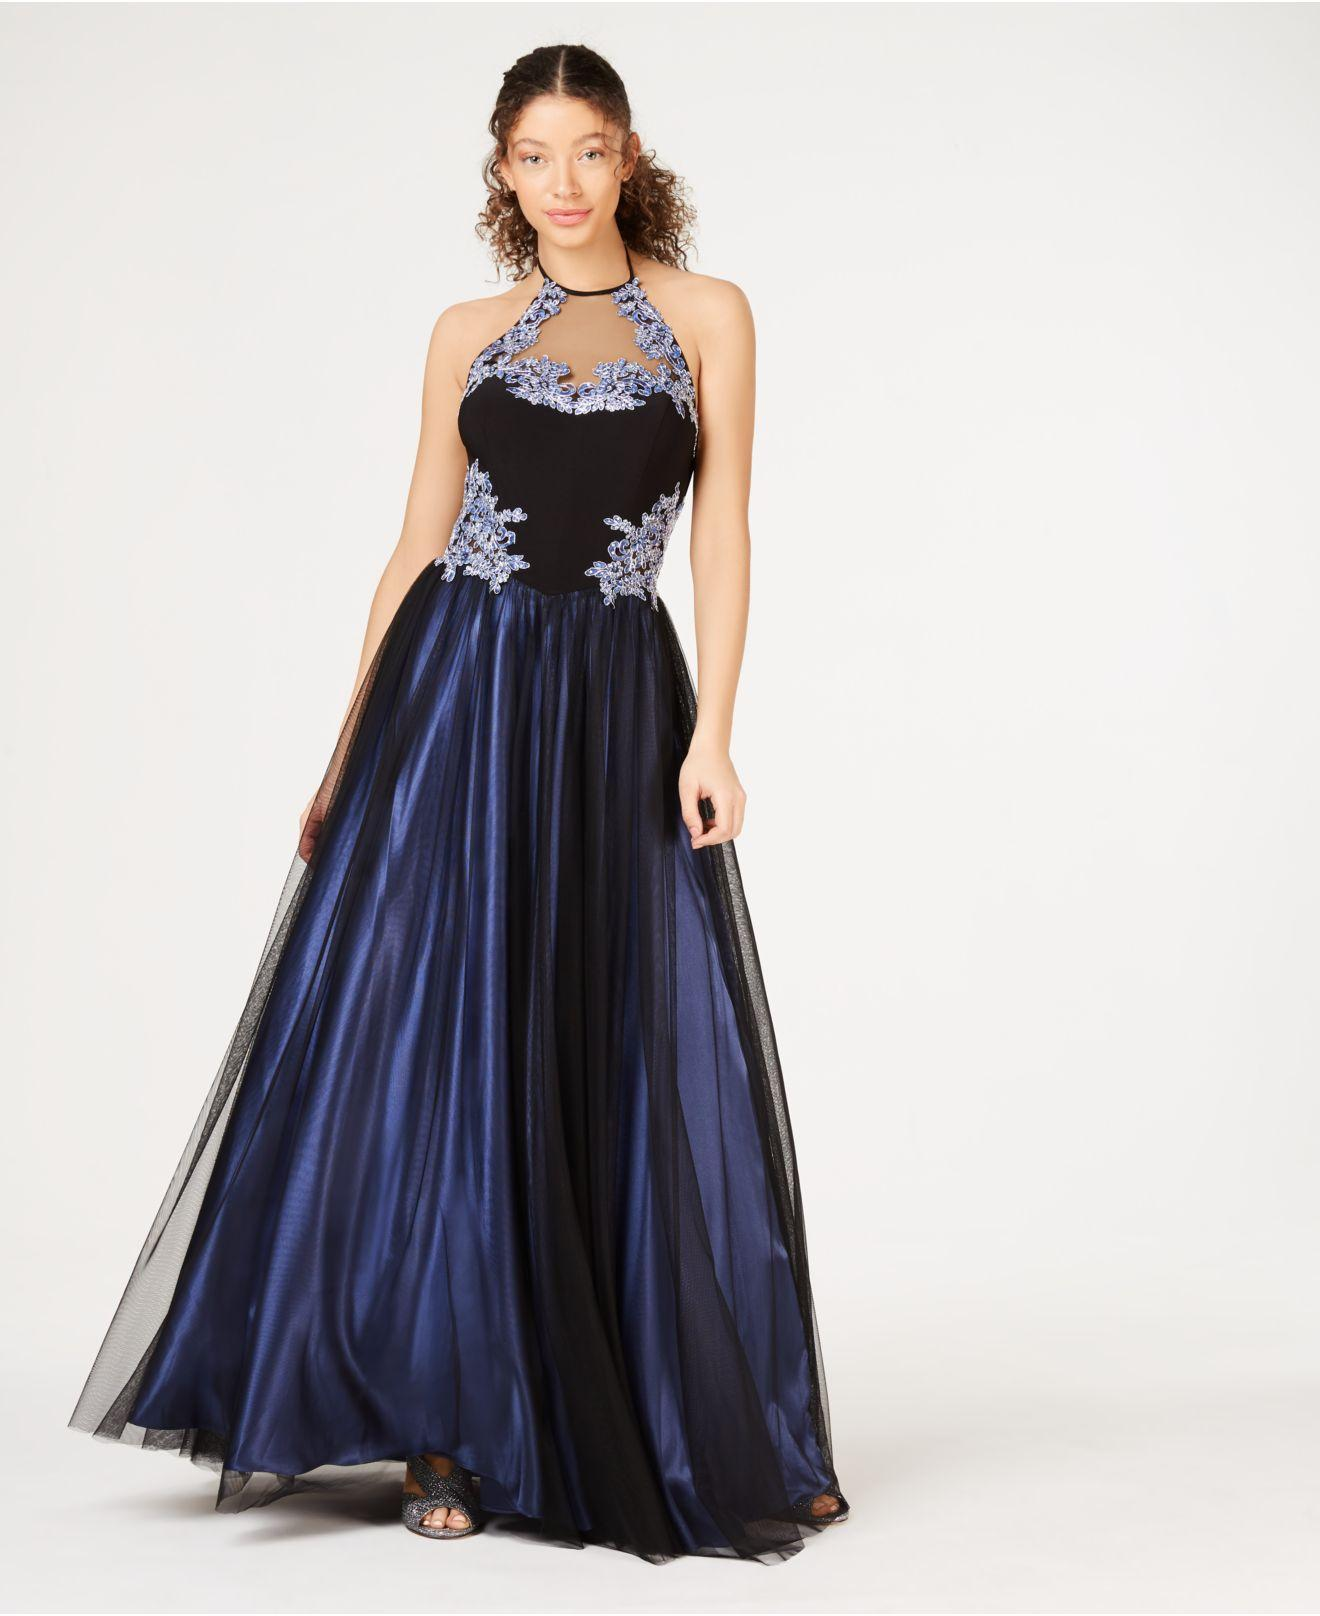 7df16aa5214c3 Blondie Nites Juniors' Sequined Appliqué Halter Gown in Blue - Lyst